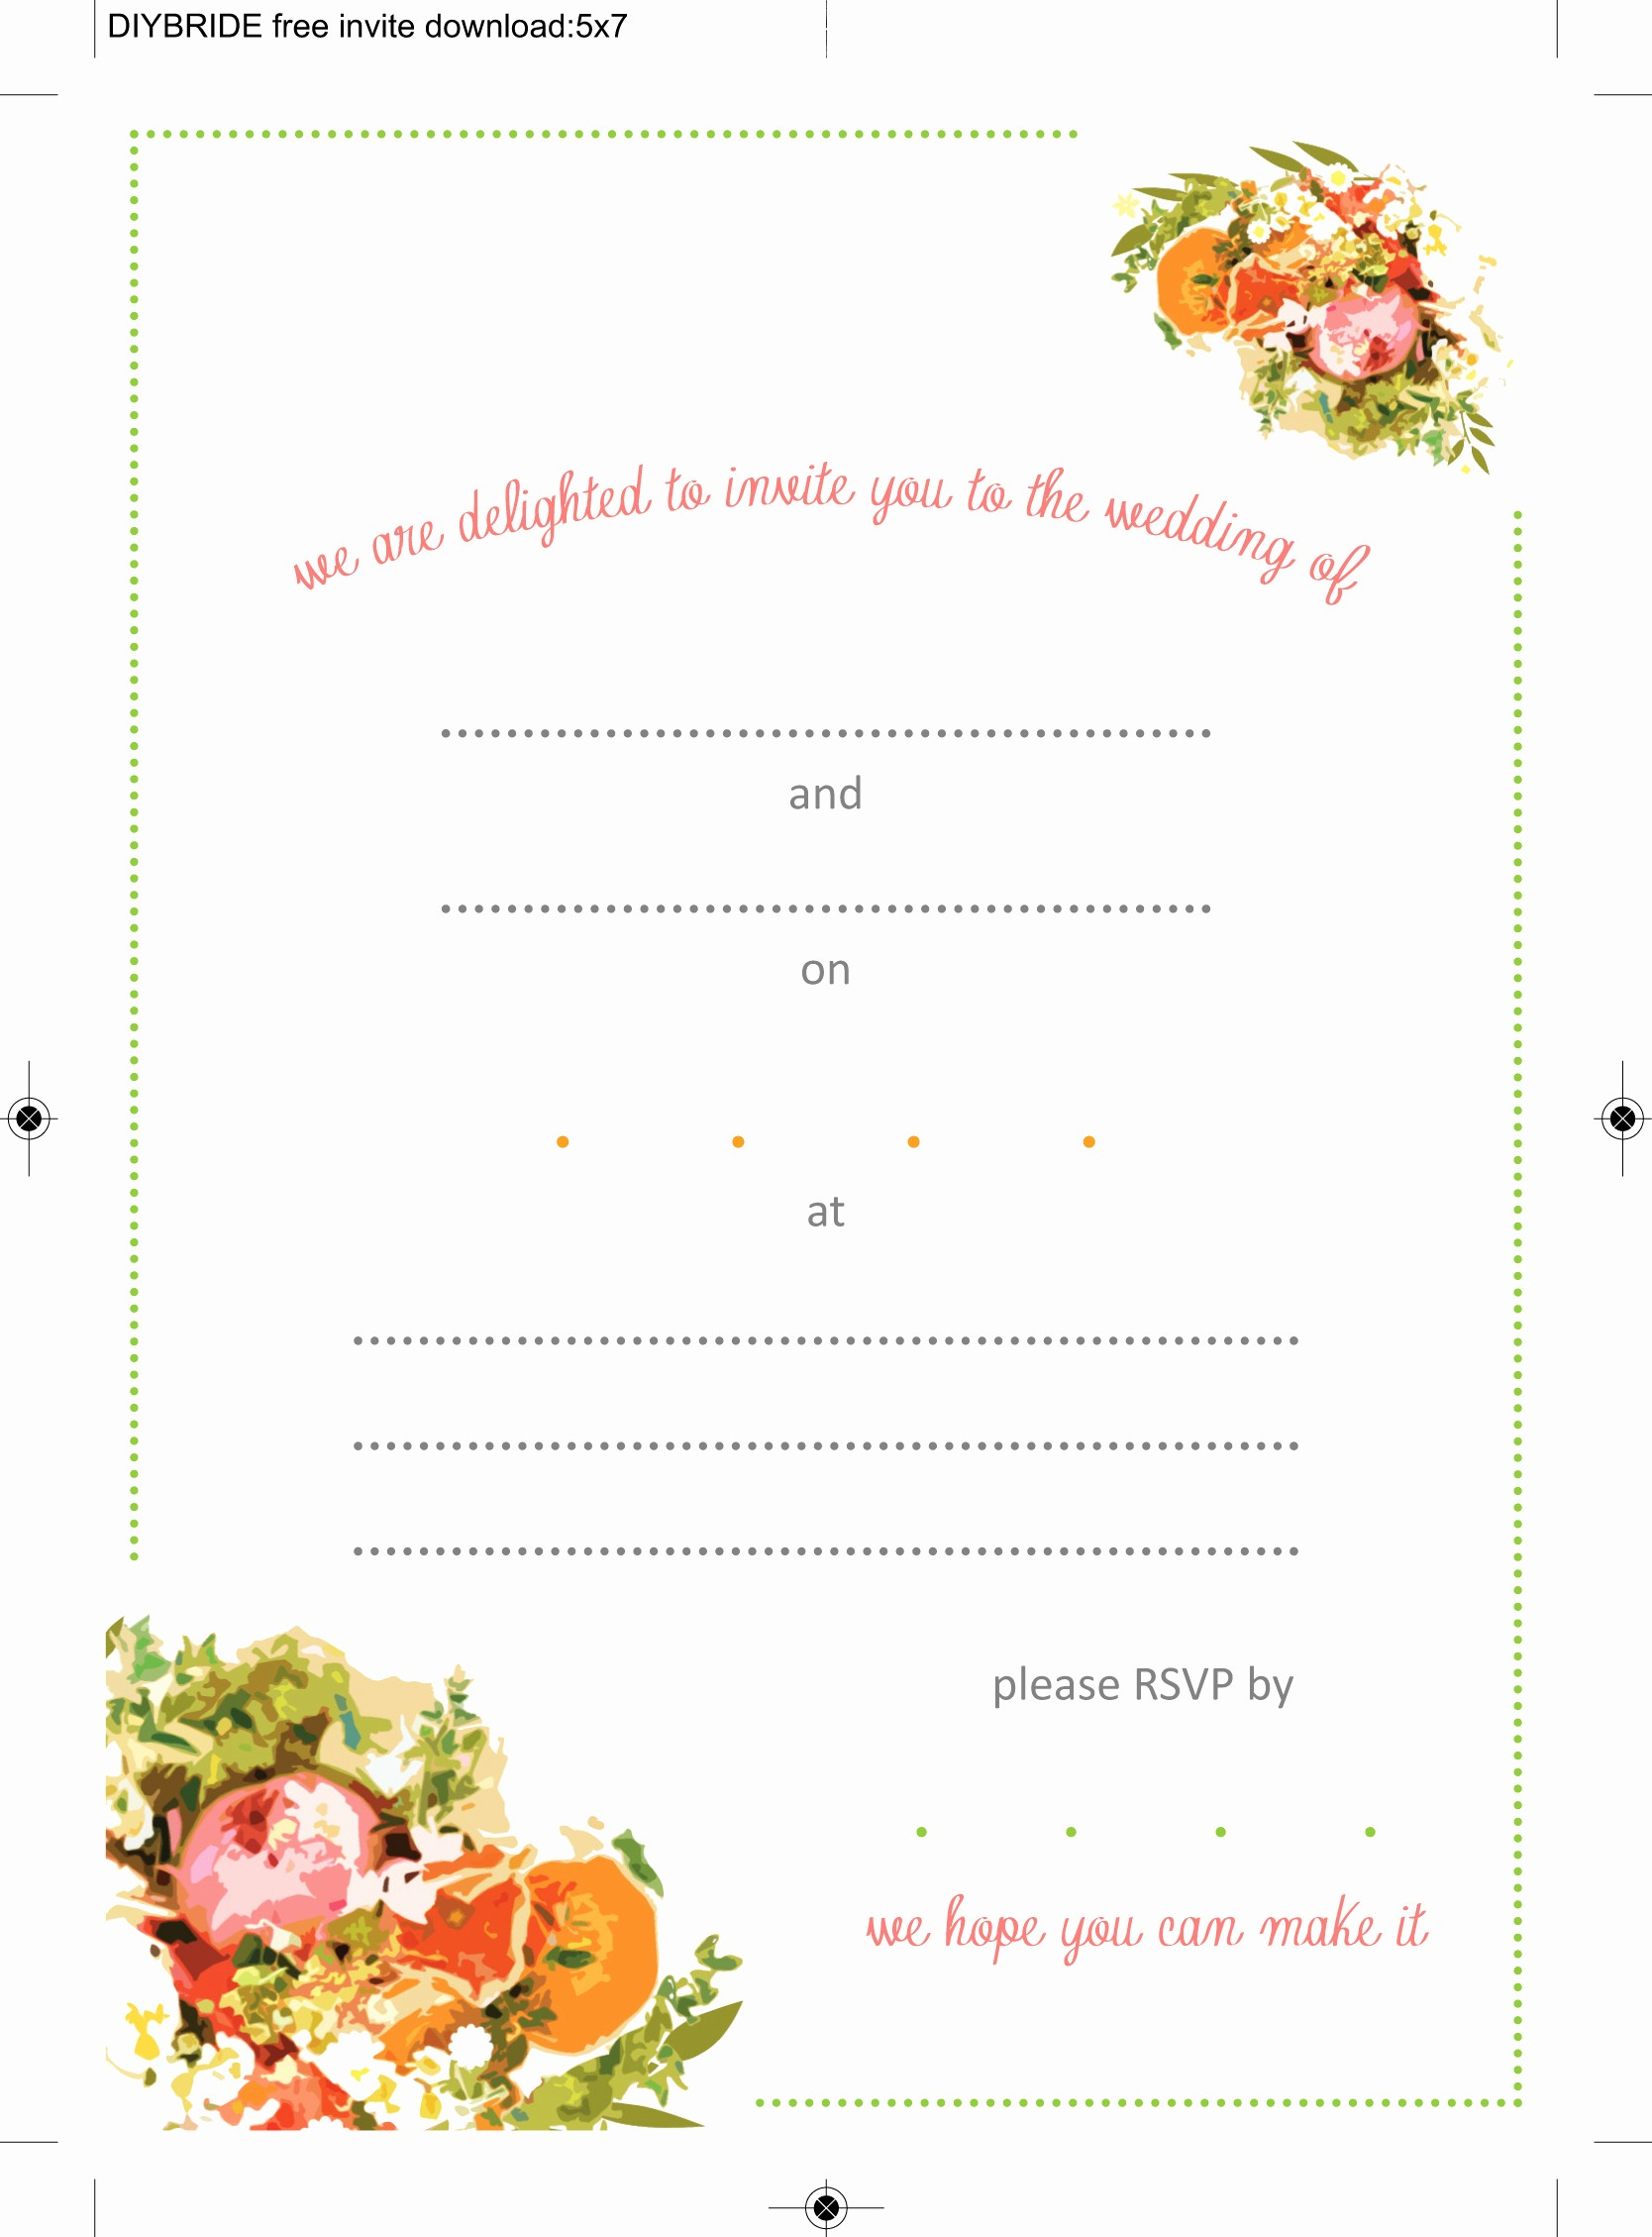 Wedding Invitation Template Word Free Fresh Wedding Invitation Templates that are Cute and Easy to